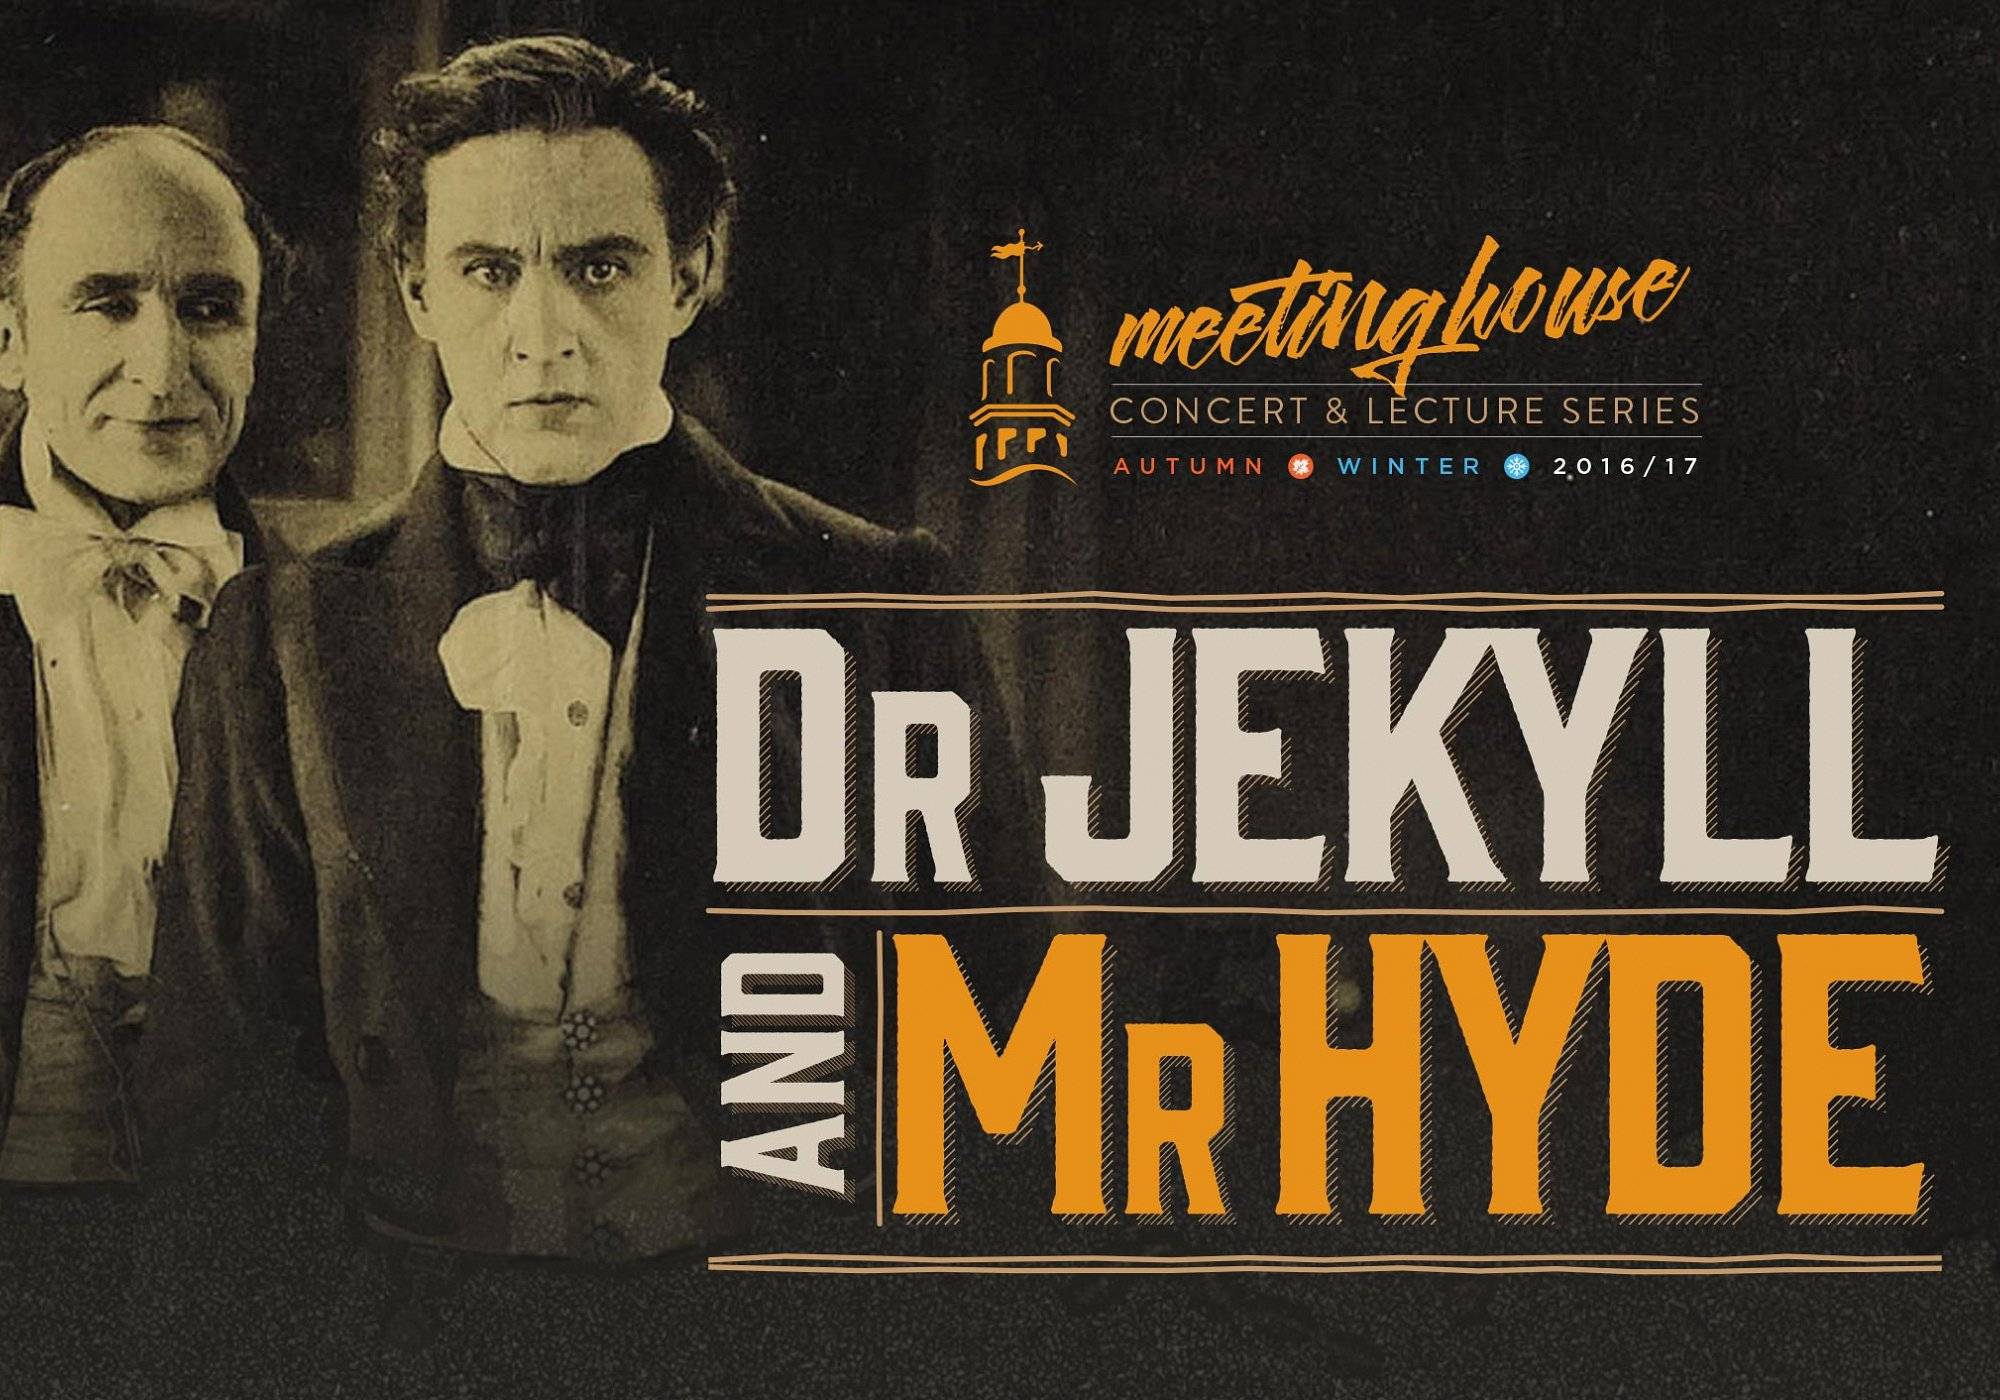 Dr. Jeckyl & Mr. Hyde